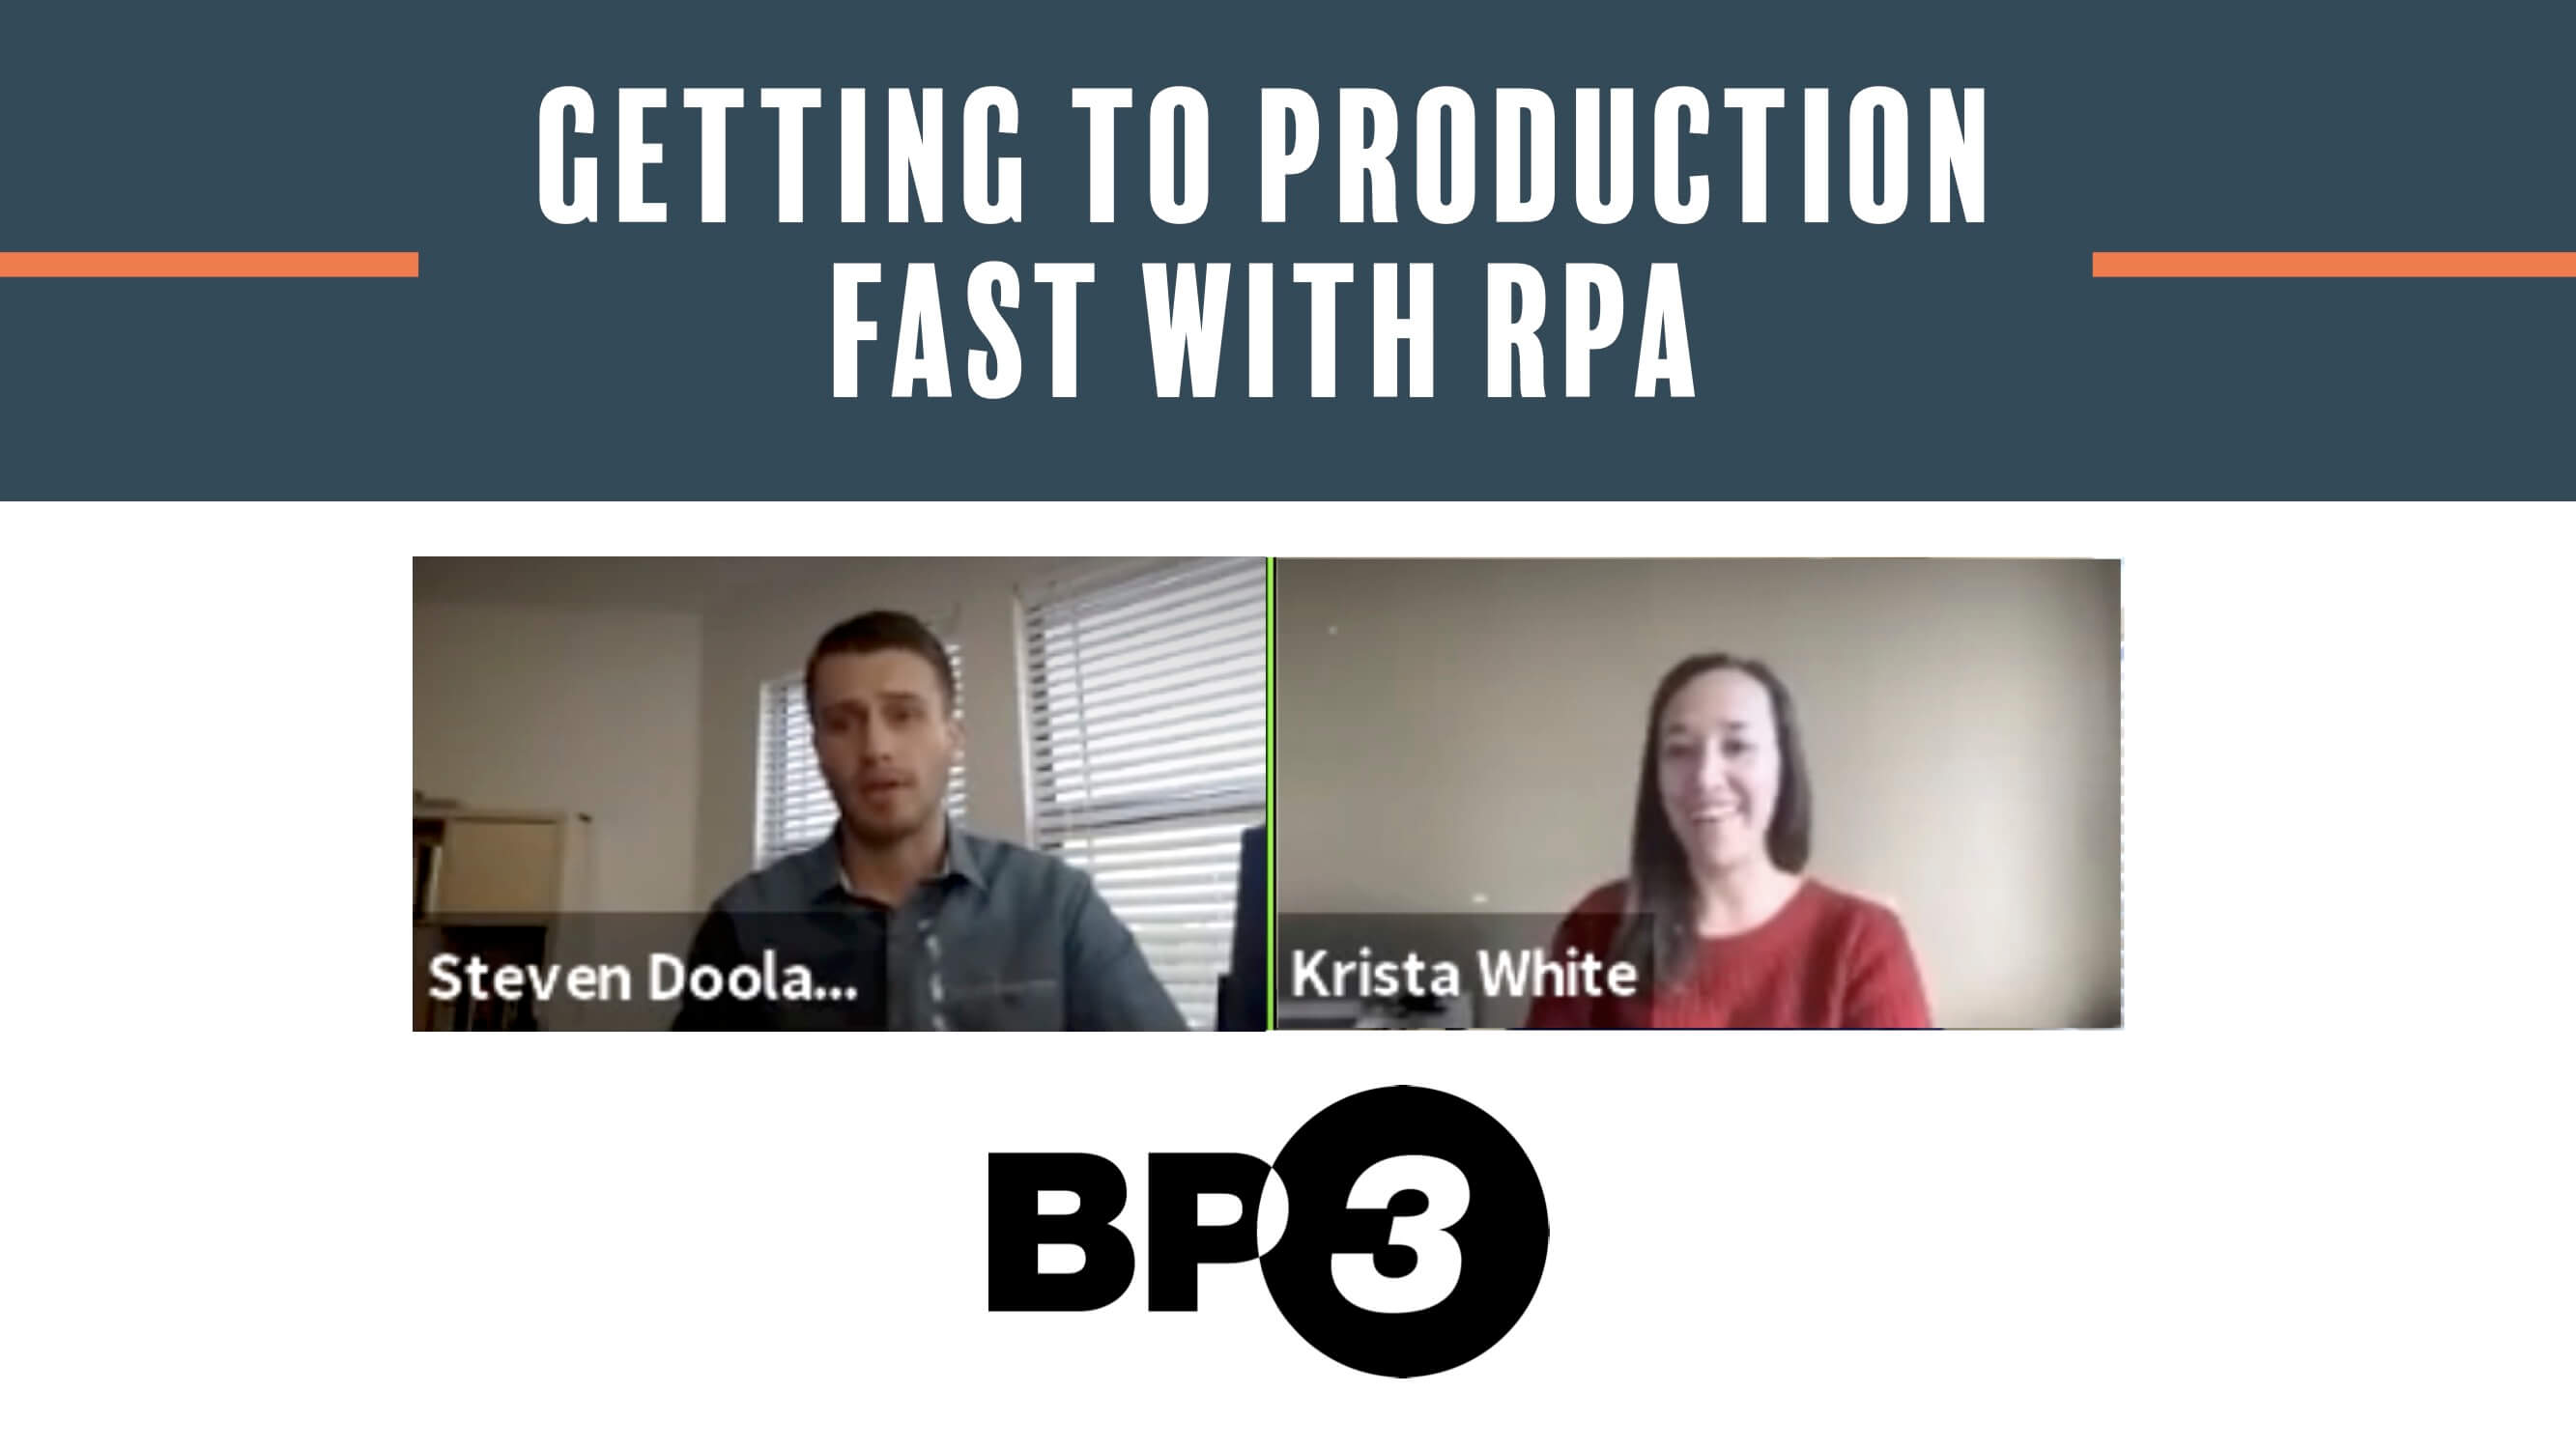 Getting to Production Fast with RPA